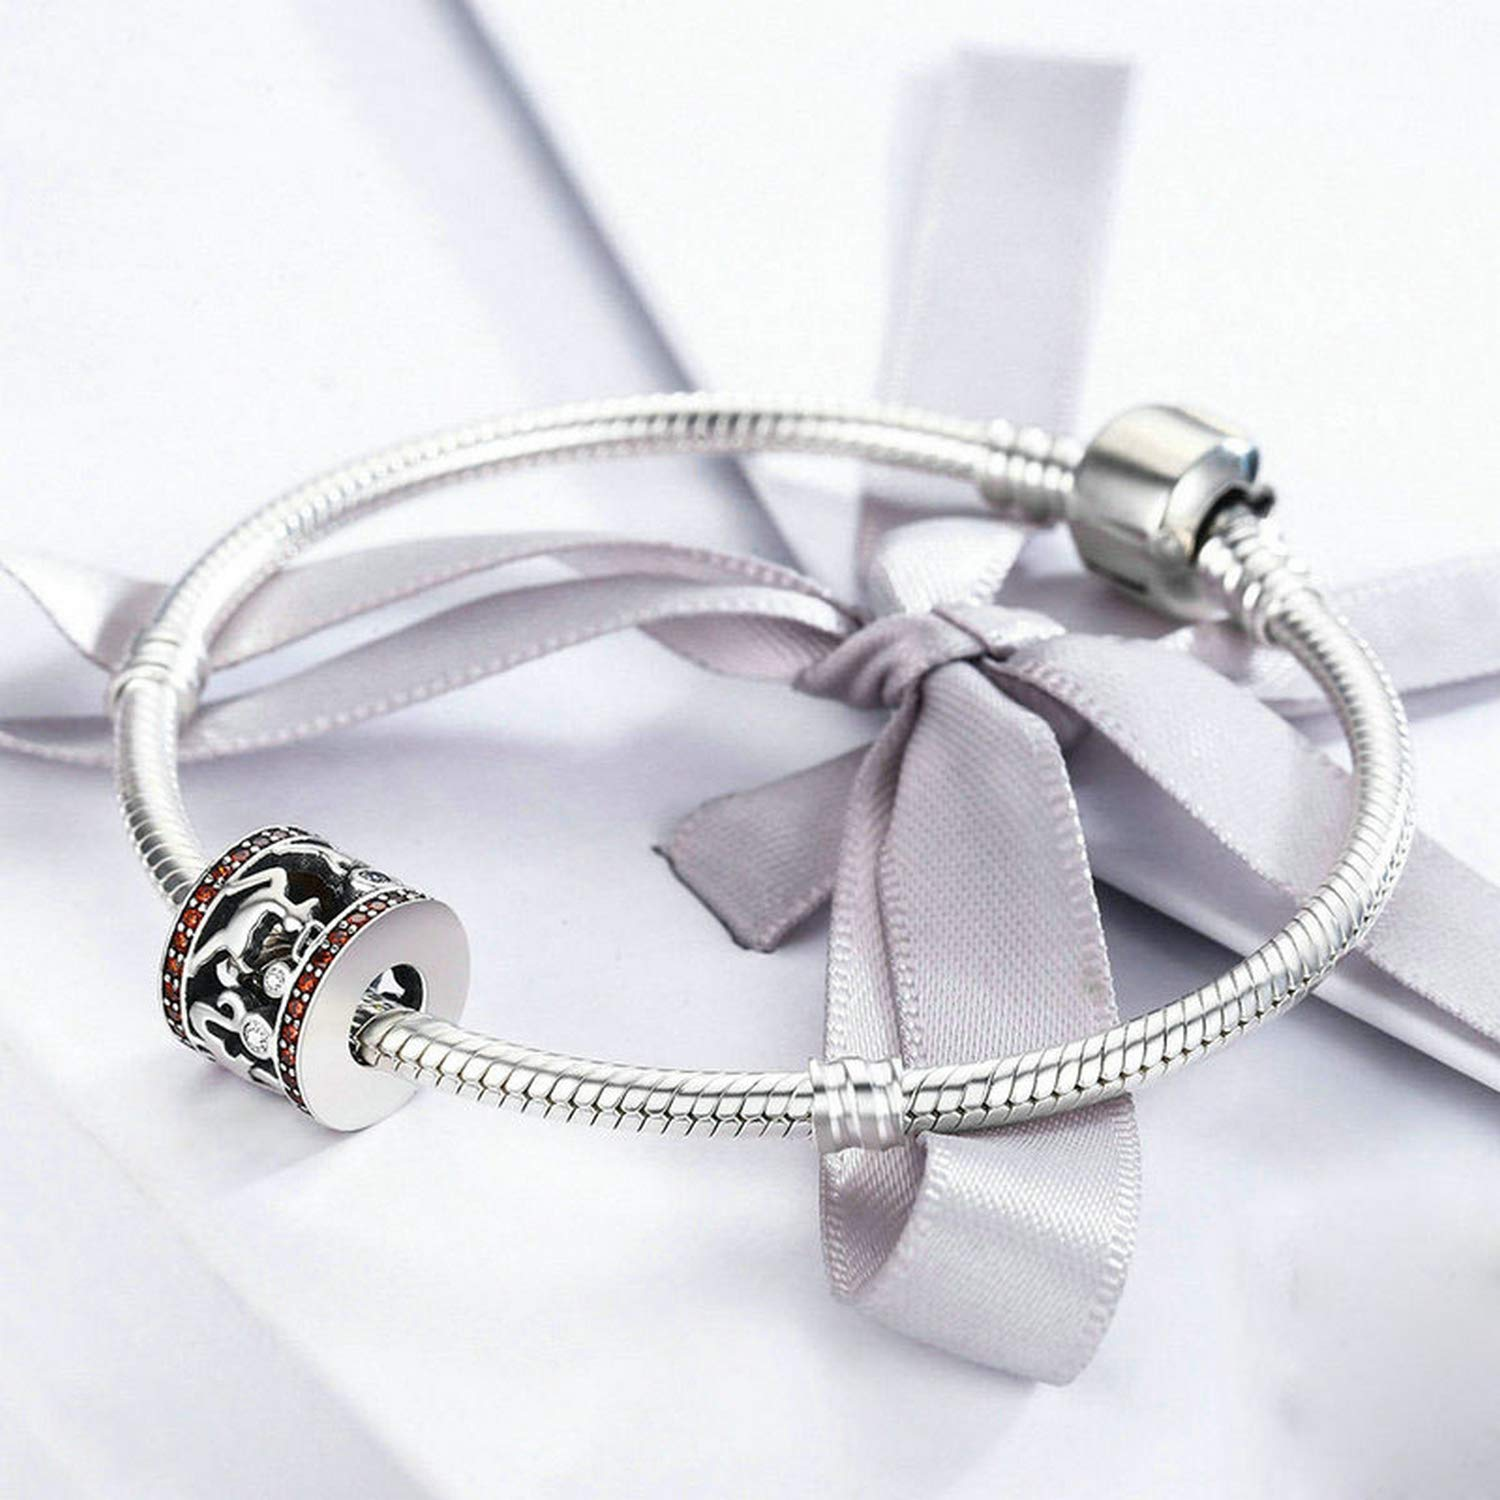 Evereena Silver Beads Bracelet for Girls Sweet Memory About Christmas Elk Santa Claus Womens Jewelry